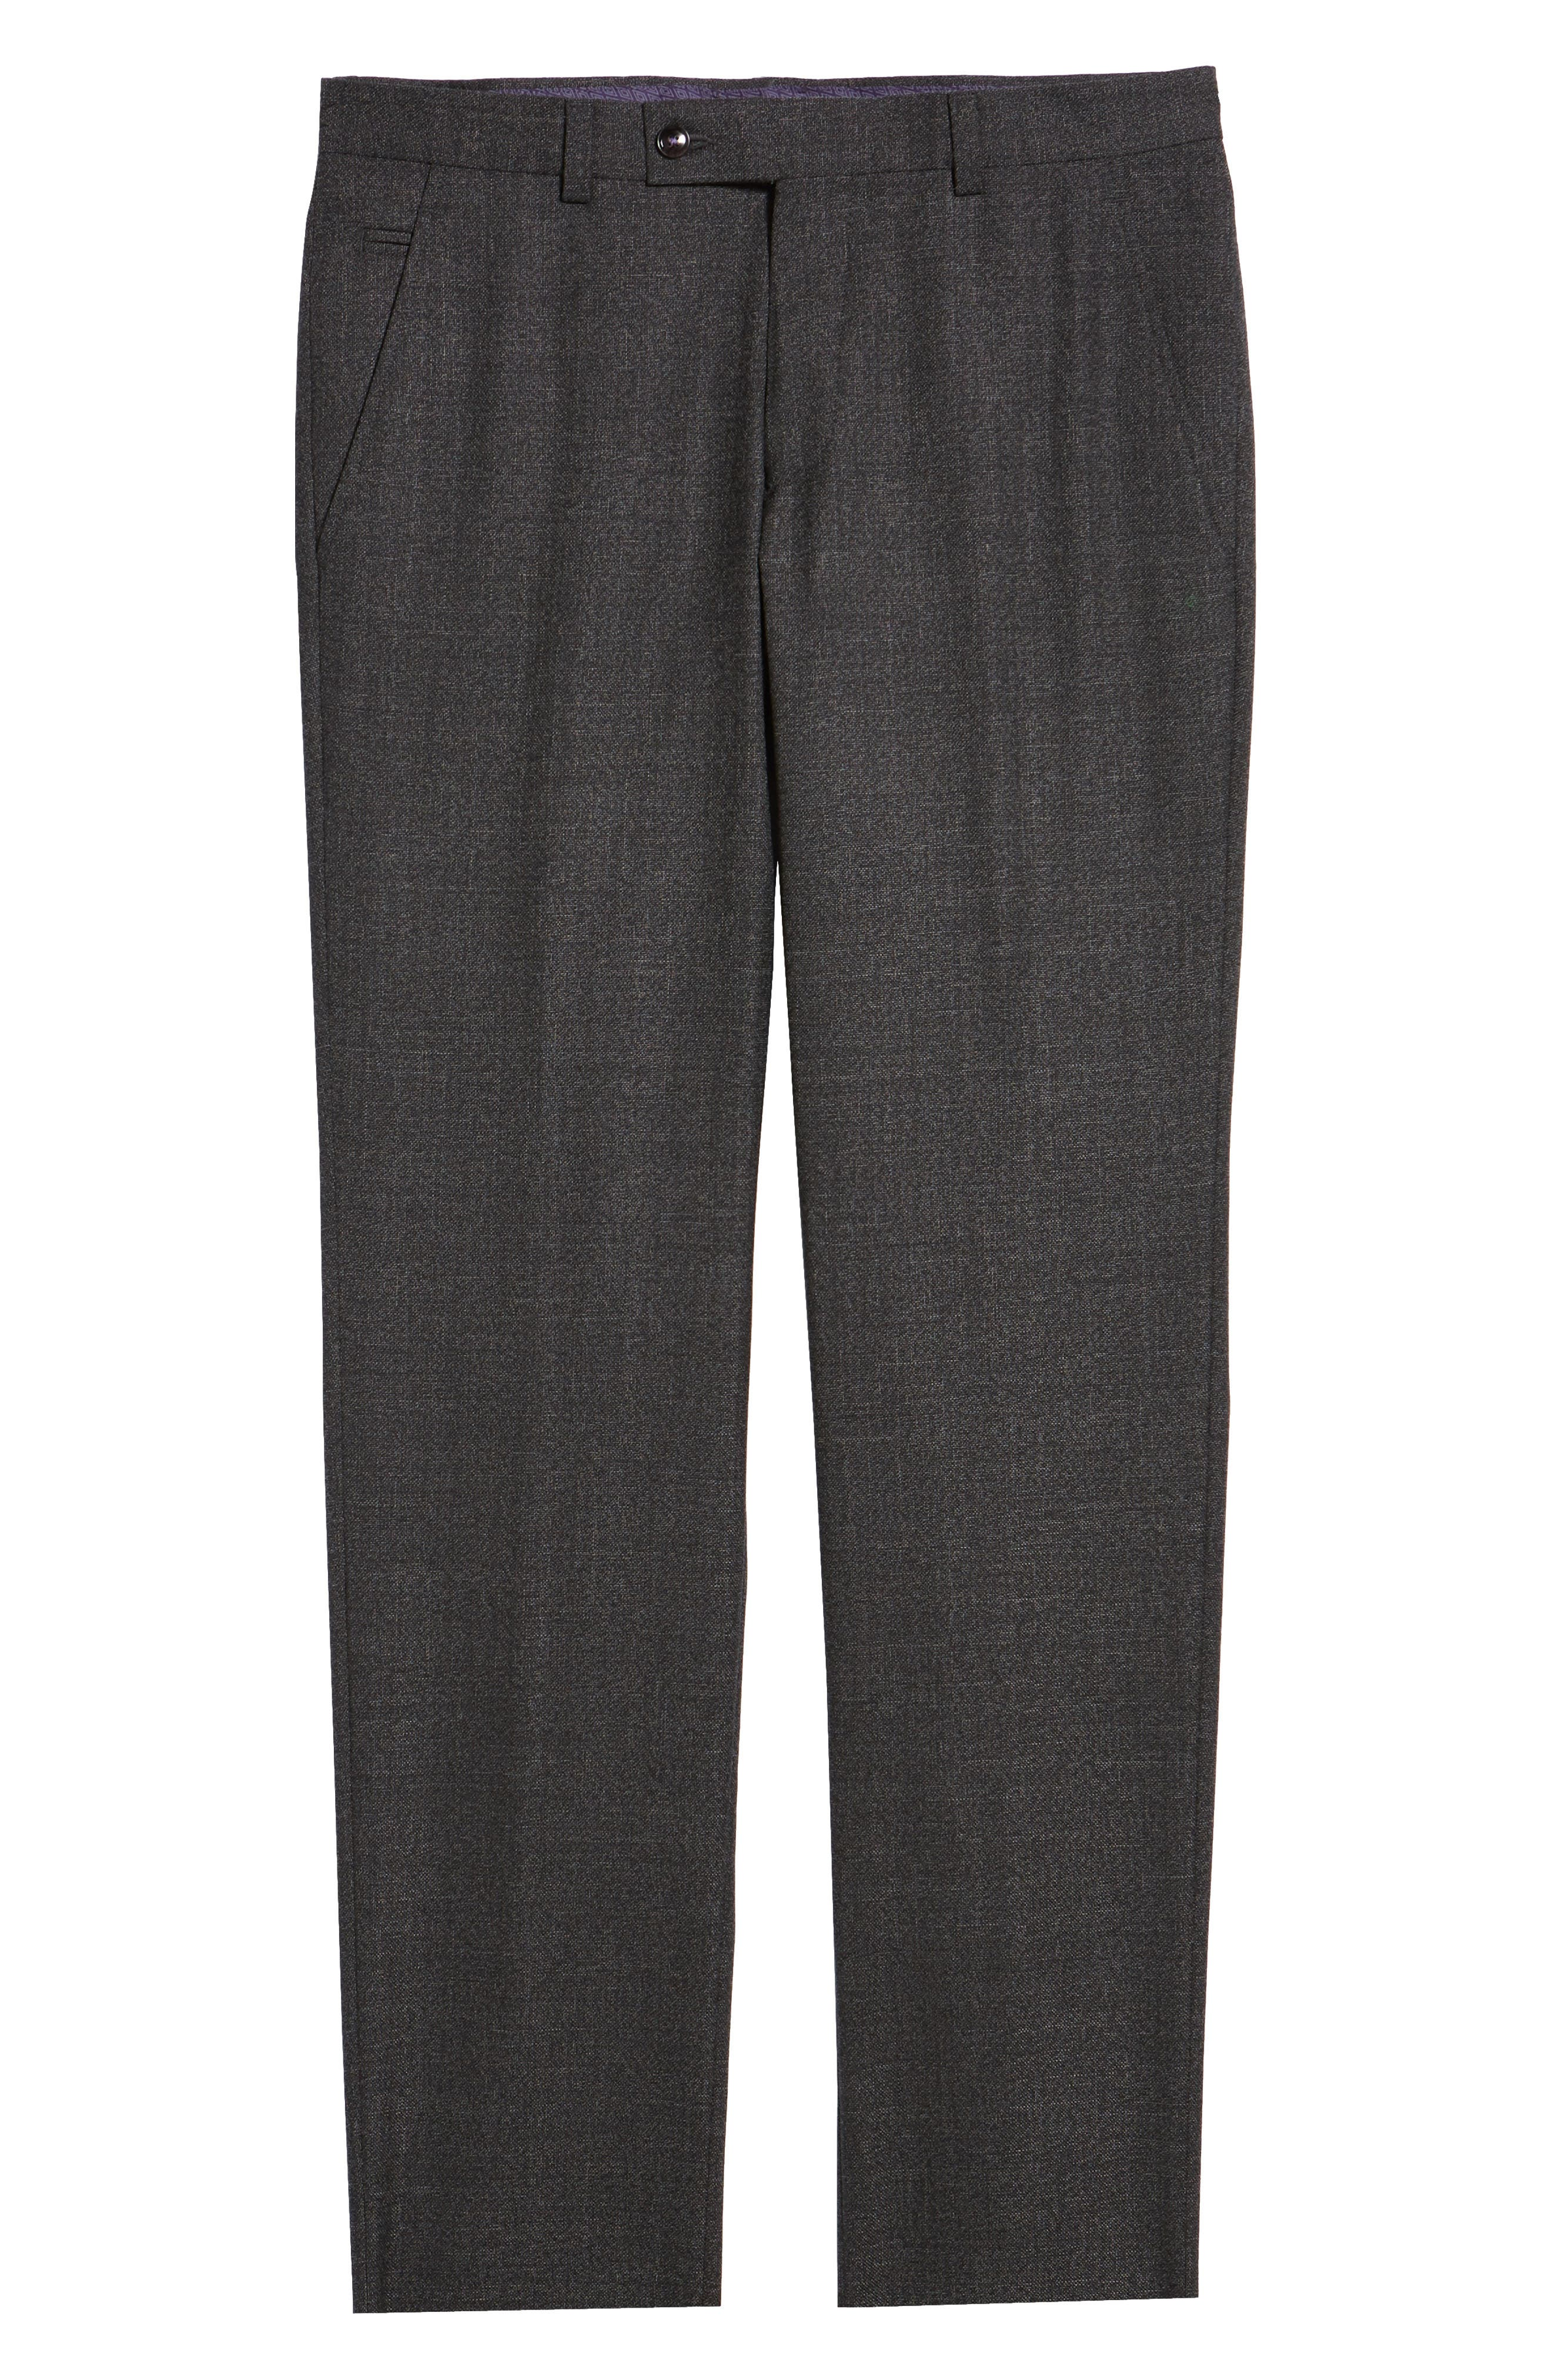 TED BAKER LONDON, Jerome Flat Front Solid Wool Trousers, Alternate thumbnail 6, color, CHARCOAL